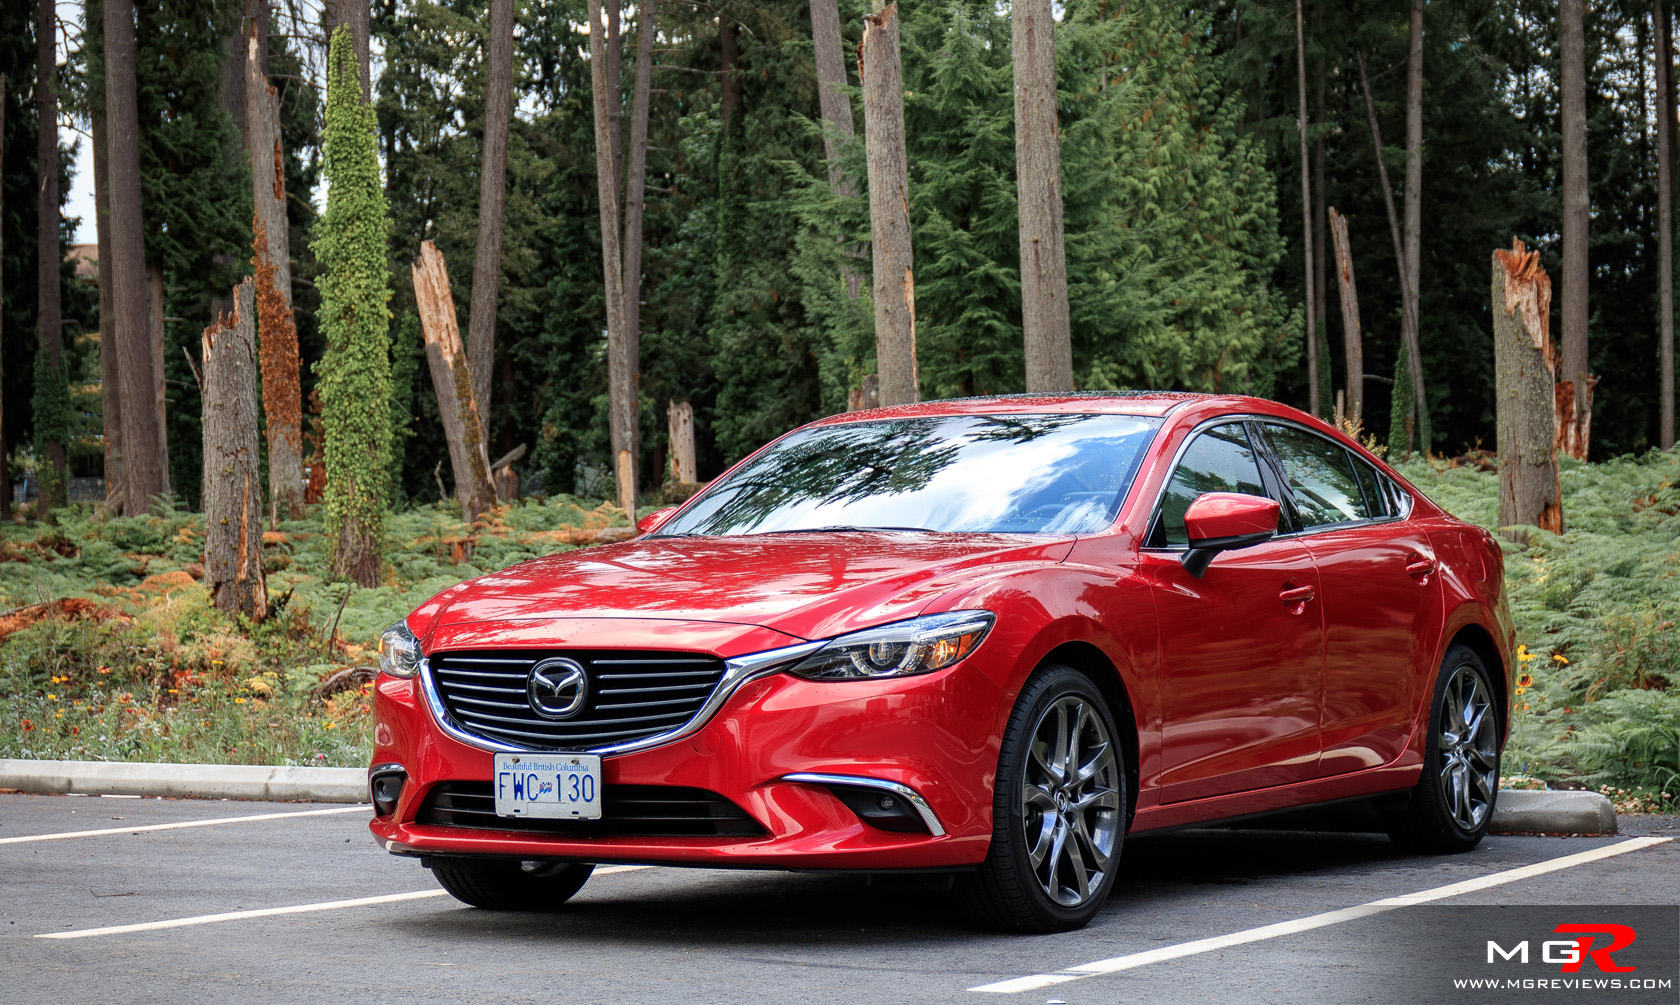 2017 mazda6 2 m g reviews. Black Bedroom Furniture Sets. Home Design Ideas